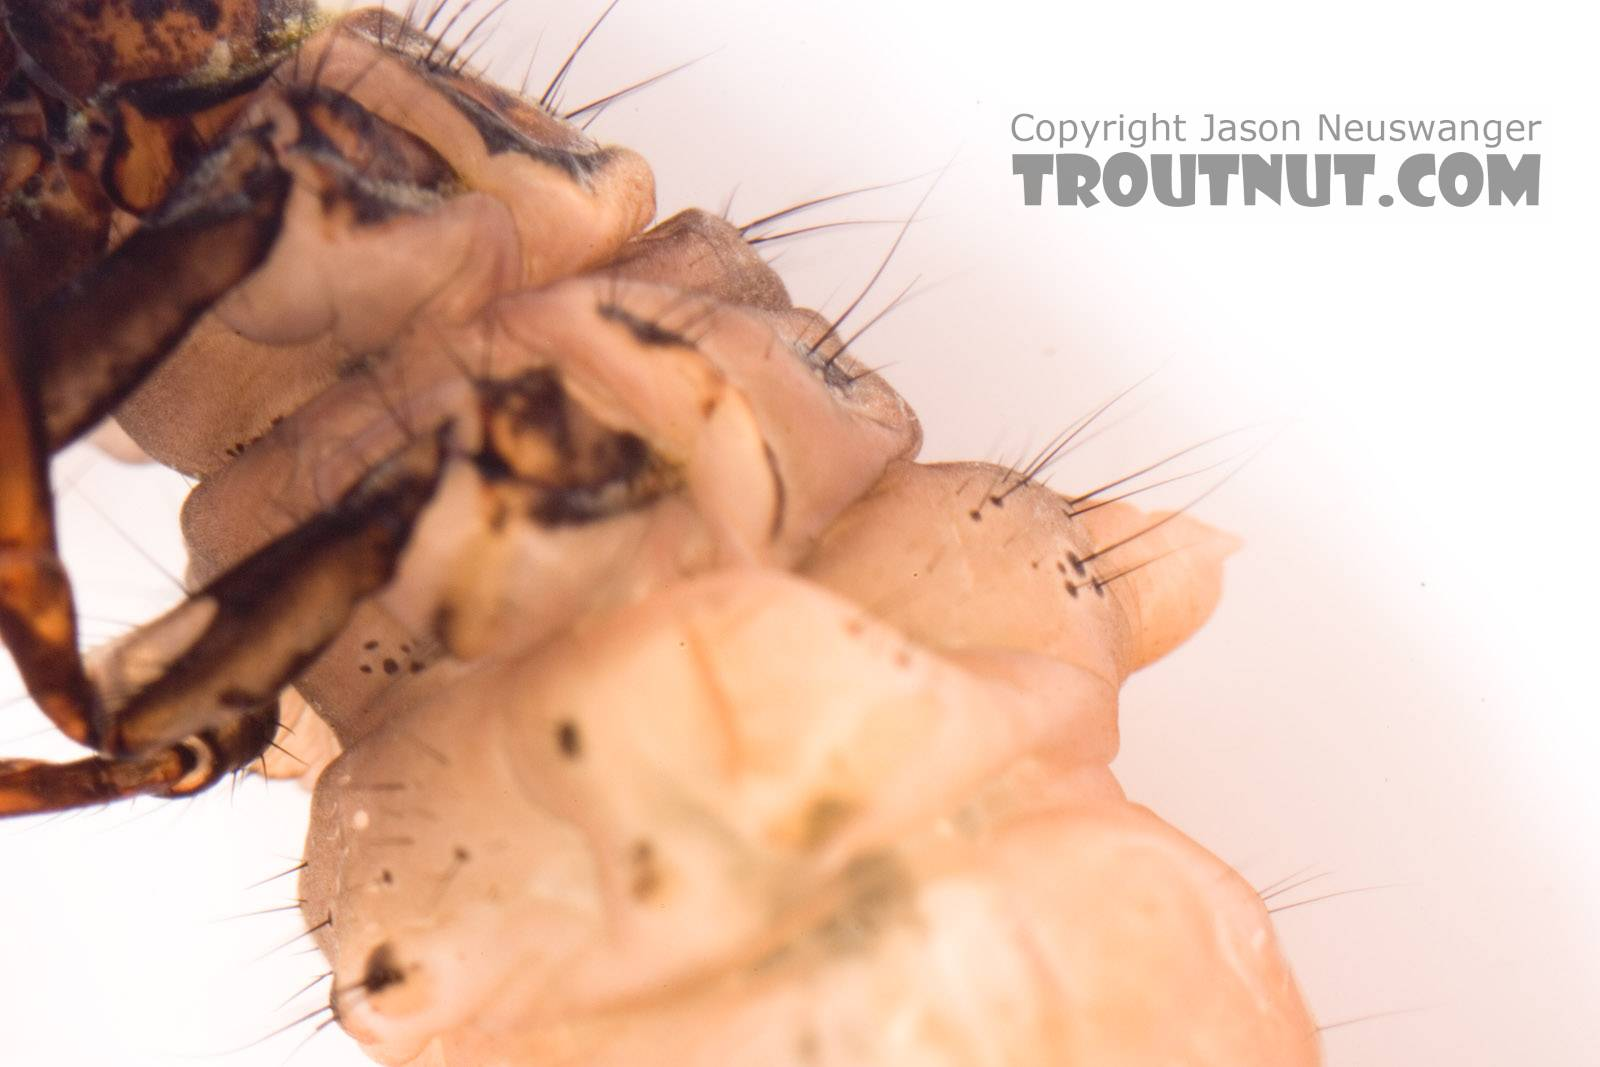 Pycnopsyche (Great Autumn Brown Sedges) Caddisfly Larva from Mystery Creek #62 in New York